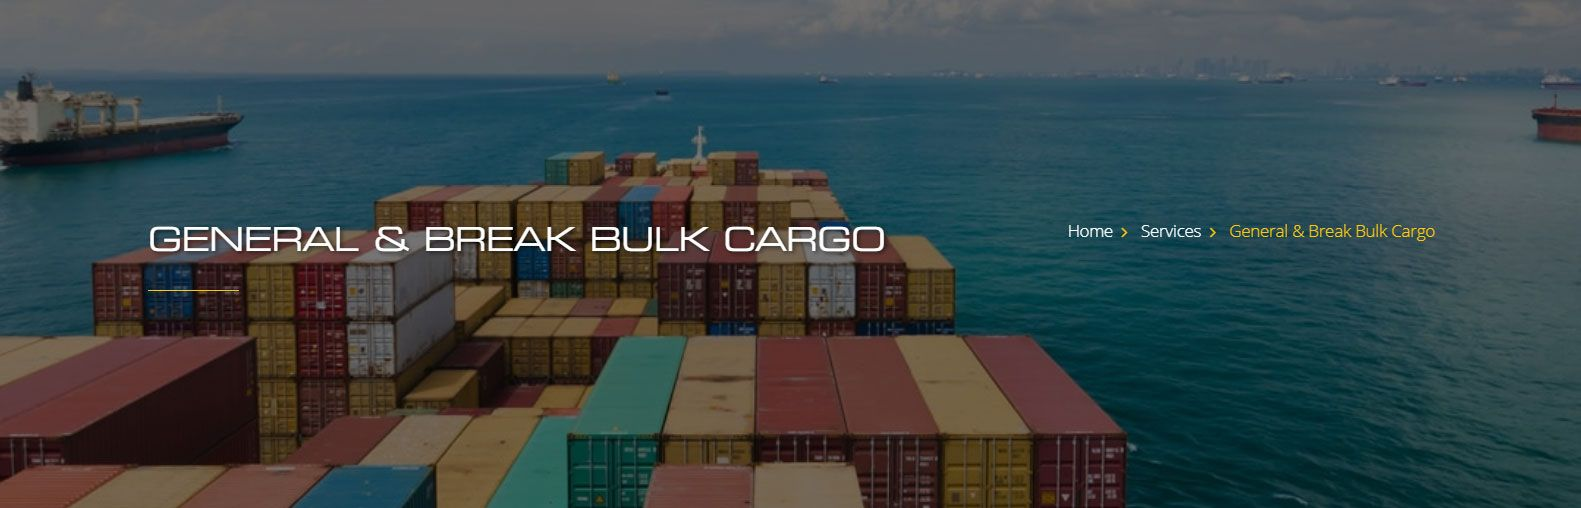 General Break Bulk Cargo Shipping Services Dubai | Logtrans